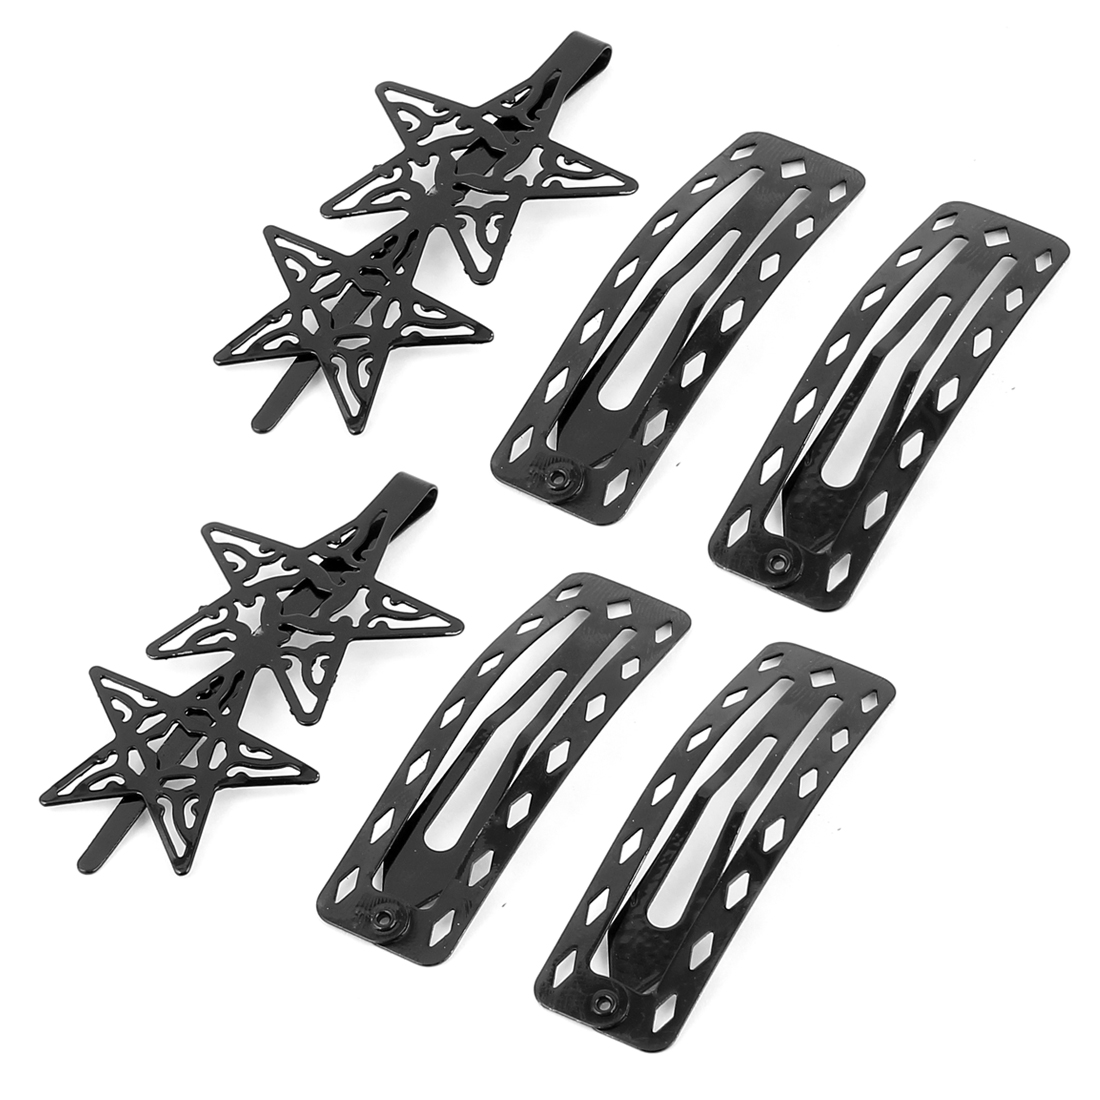 Lady Metal Rectanglar Star Design Bow Prong Snap DIY Hair Clips Hairpin 3 Pairs